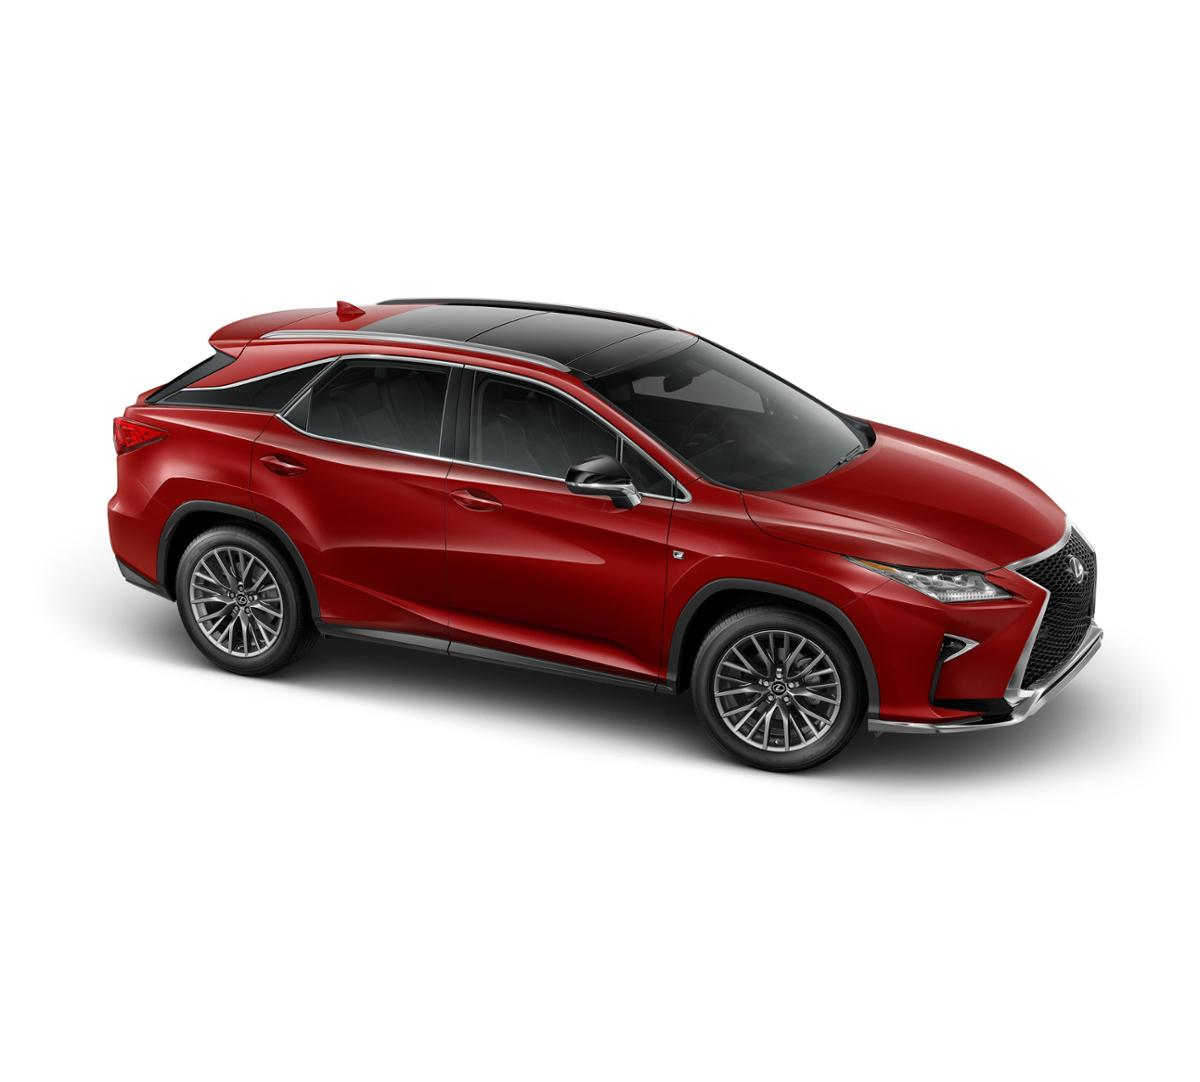 2018 lexus rx 350 f sport for sale at south county lexus in mission viejo orange county ca. Black Bedroom Furniture Sets. Home Design Ideas